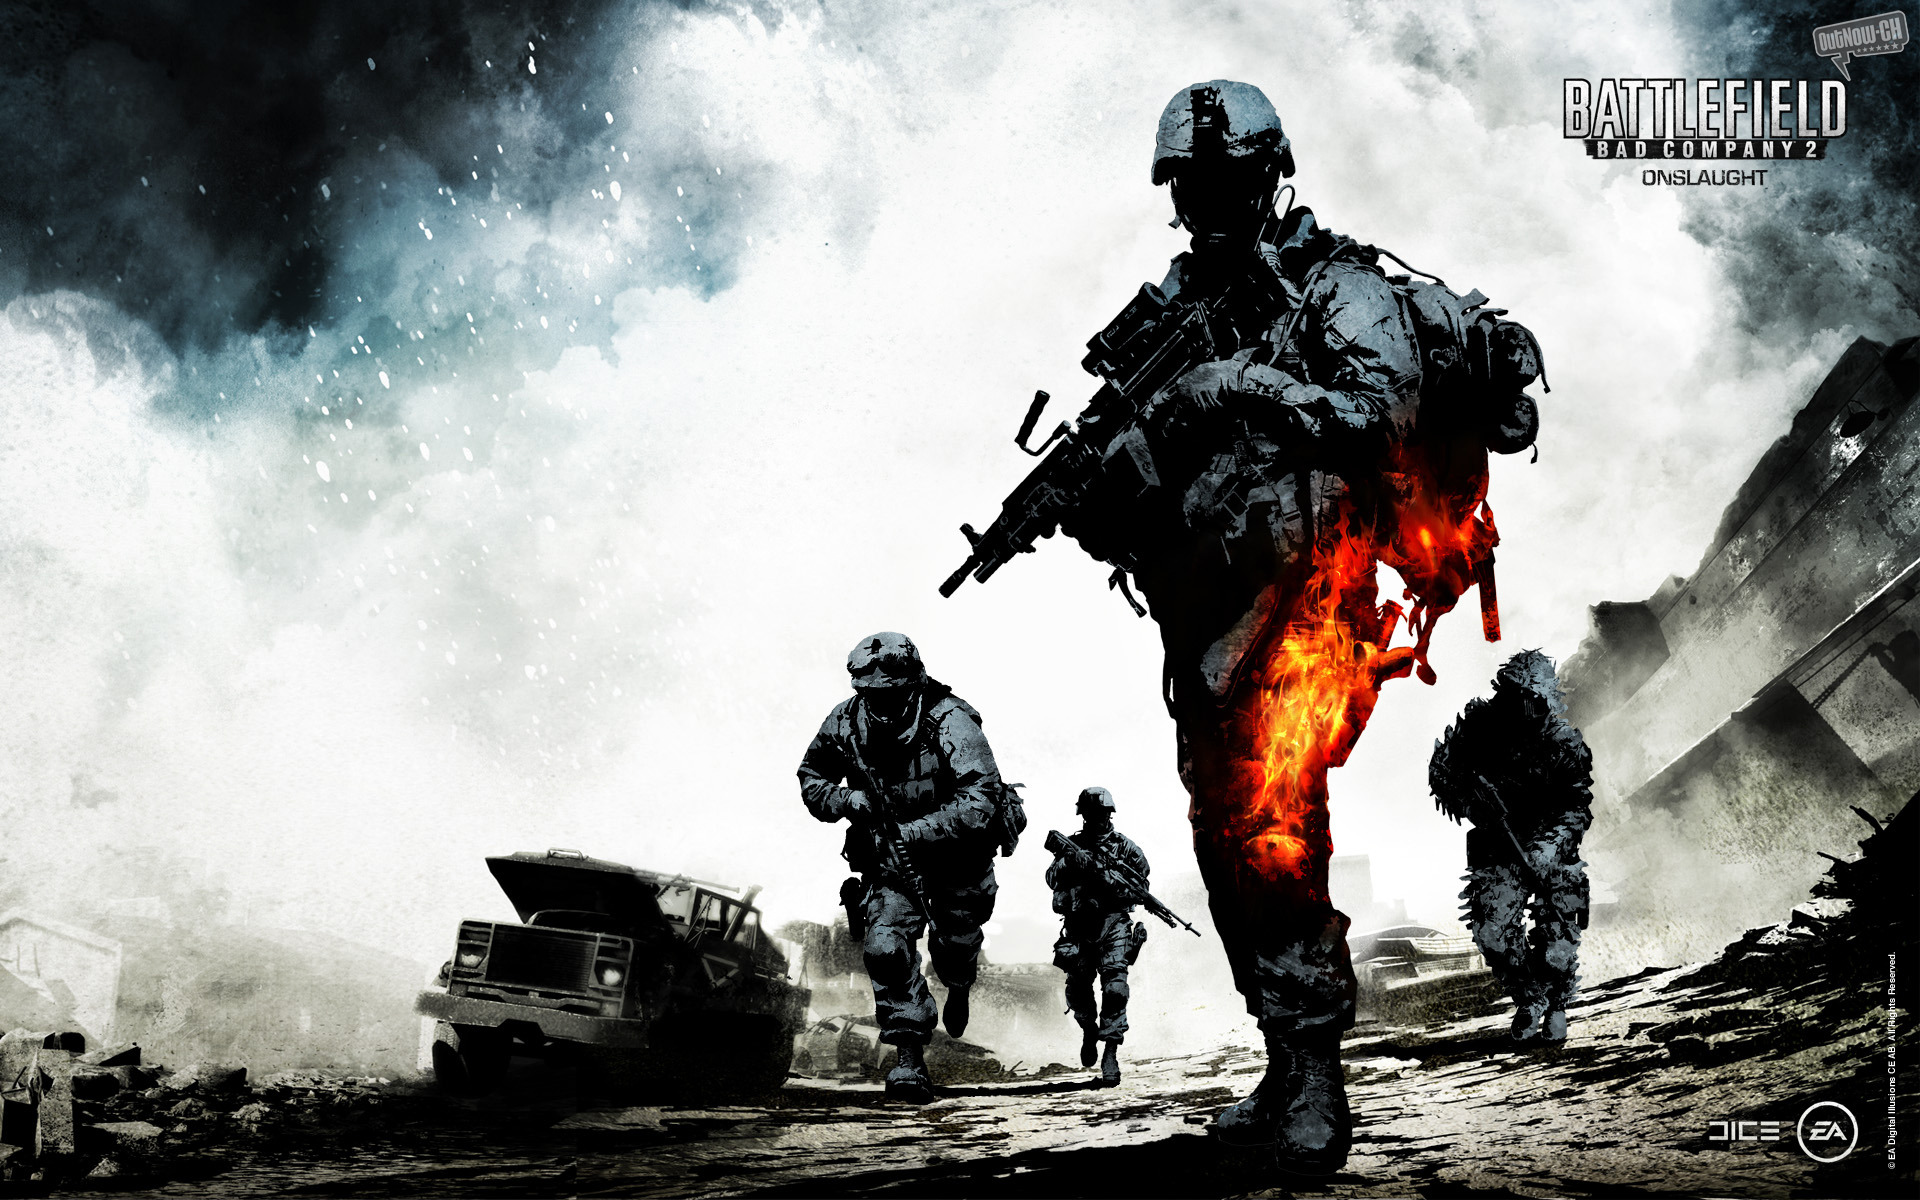 1920x1200 Battlefield Bad Company 2 Desktop Pc And Mac Wallpaper